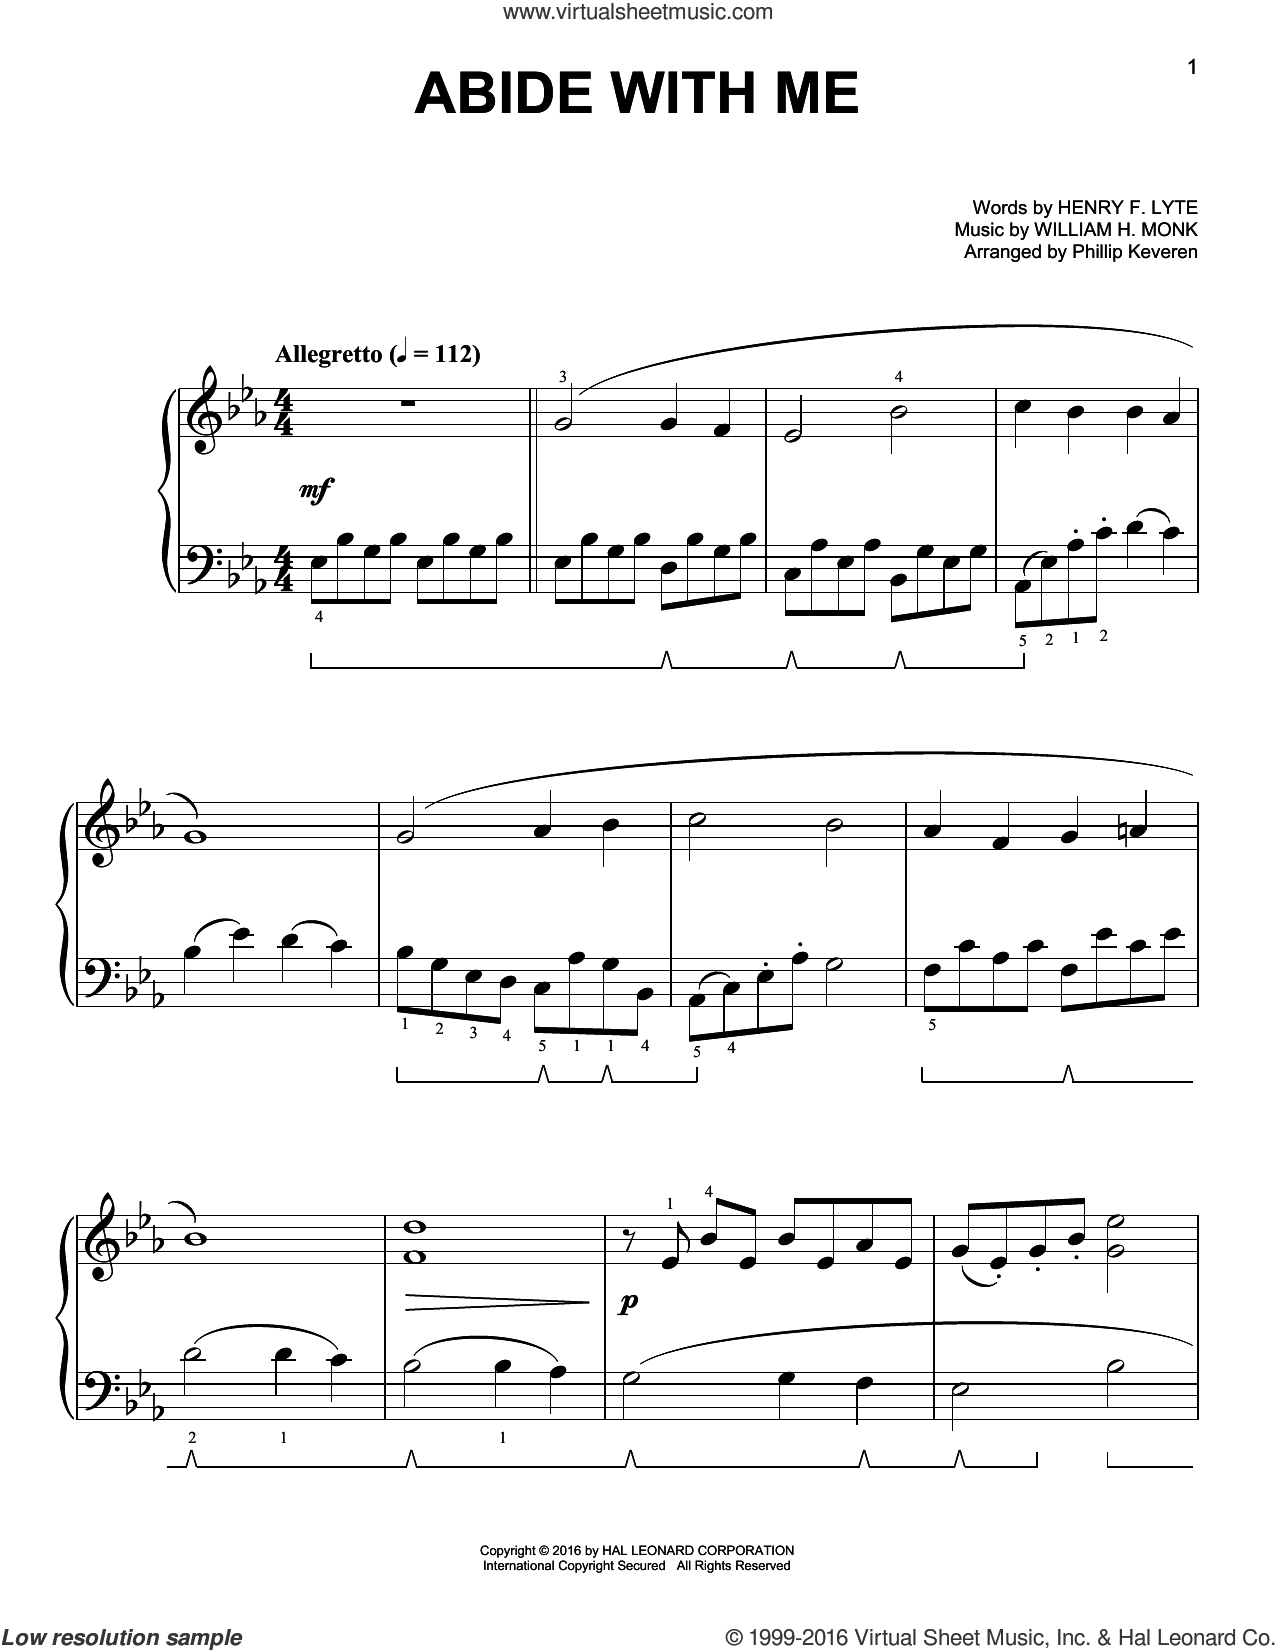 Abide With Me [Classical version] (arr. Phillip Keveren) sheet music for piano solo by Henry F. Lyte, Phillip Keveren and William Henry Monk, easy skill level